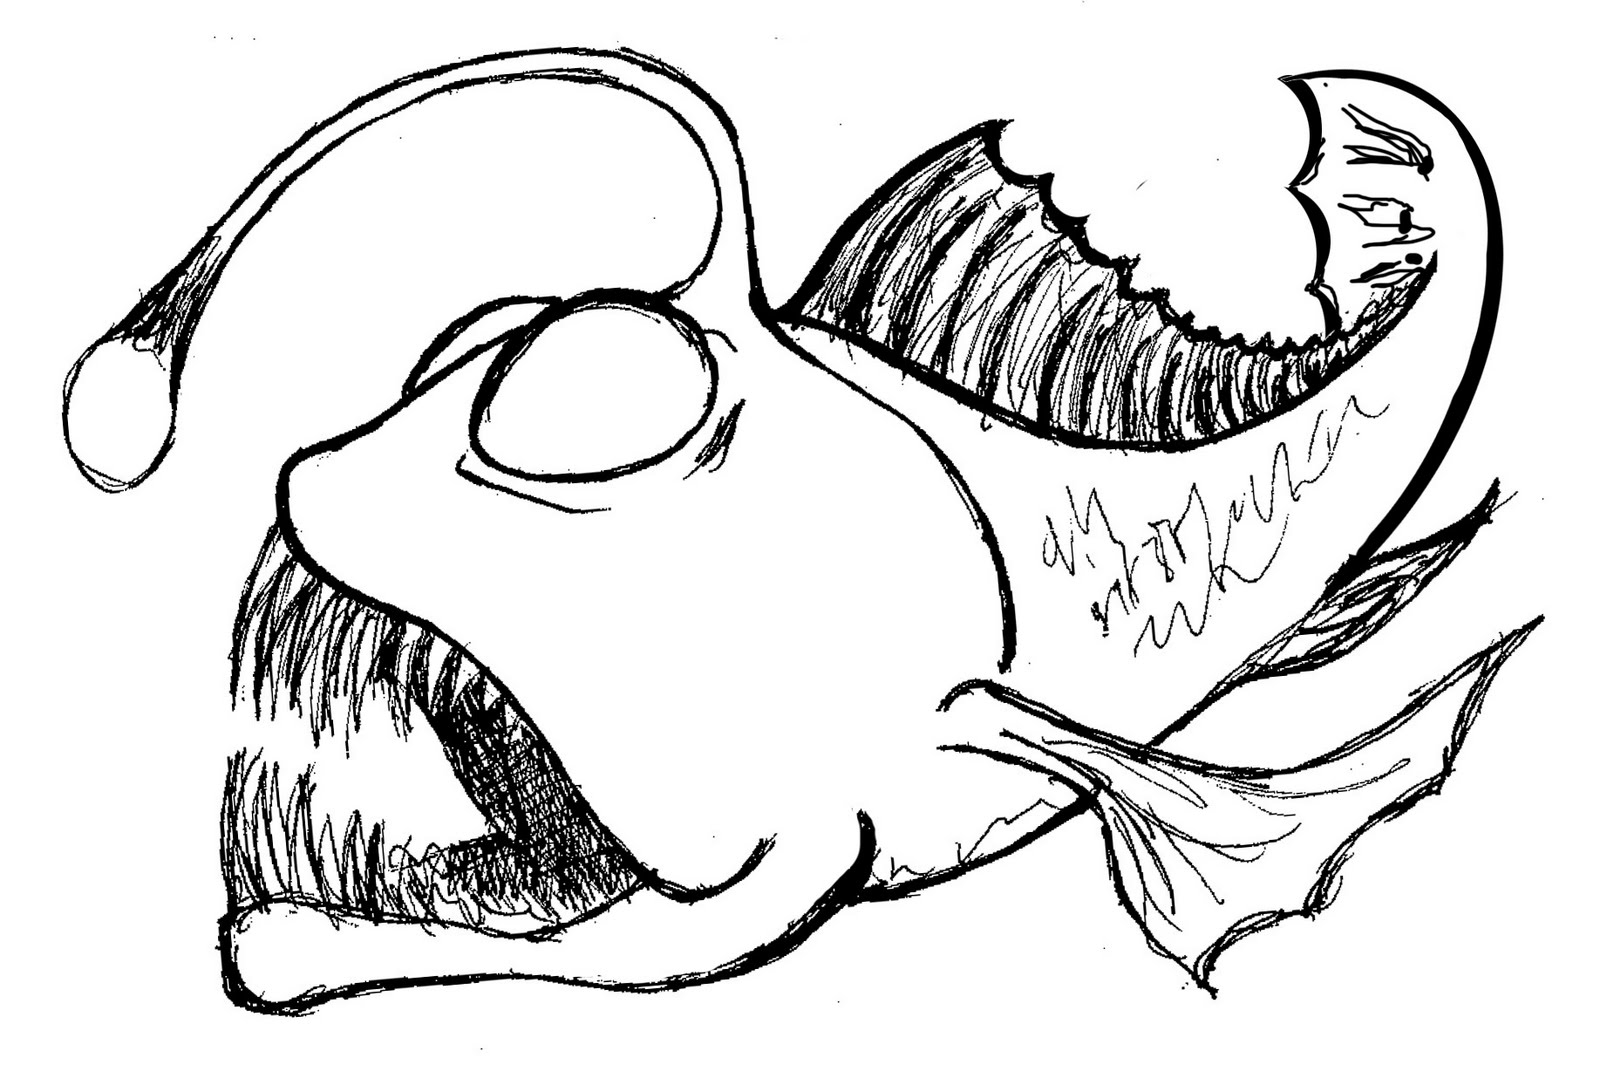 Nemo Fish Drawing at GetDrawings.com | Free for personal use Nemo ...